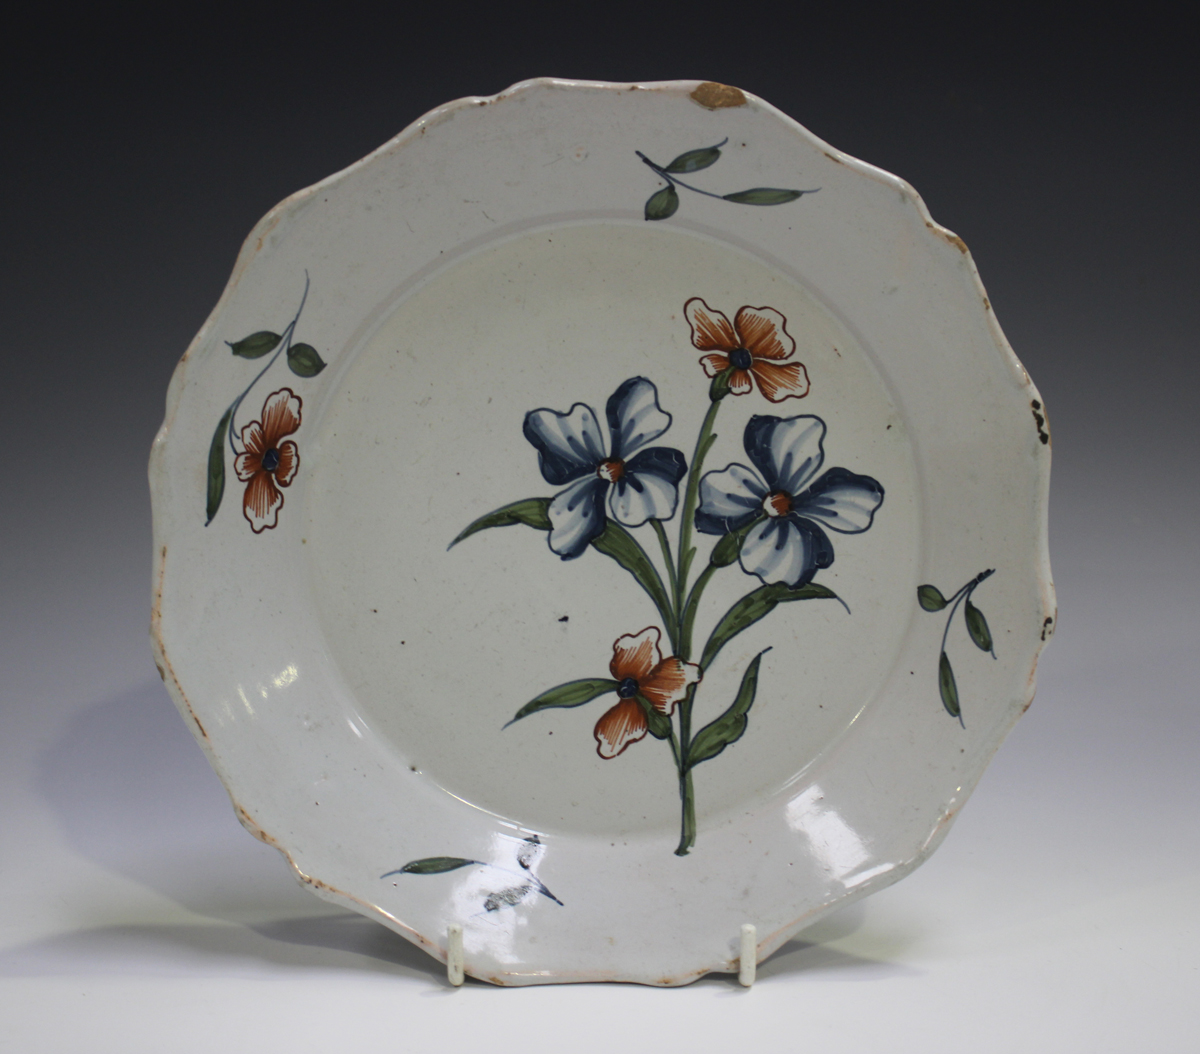 A Delft plate, 18th century, painted in blue, green and red with a floral spray, diameter 22.5cm (